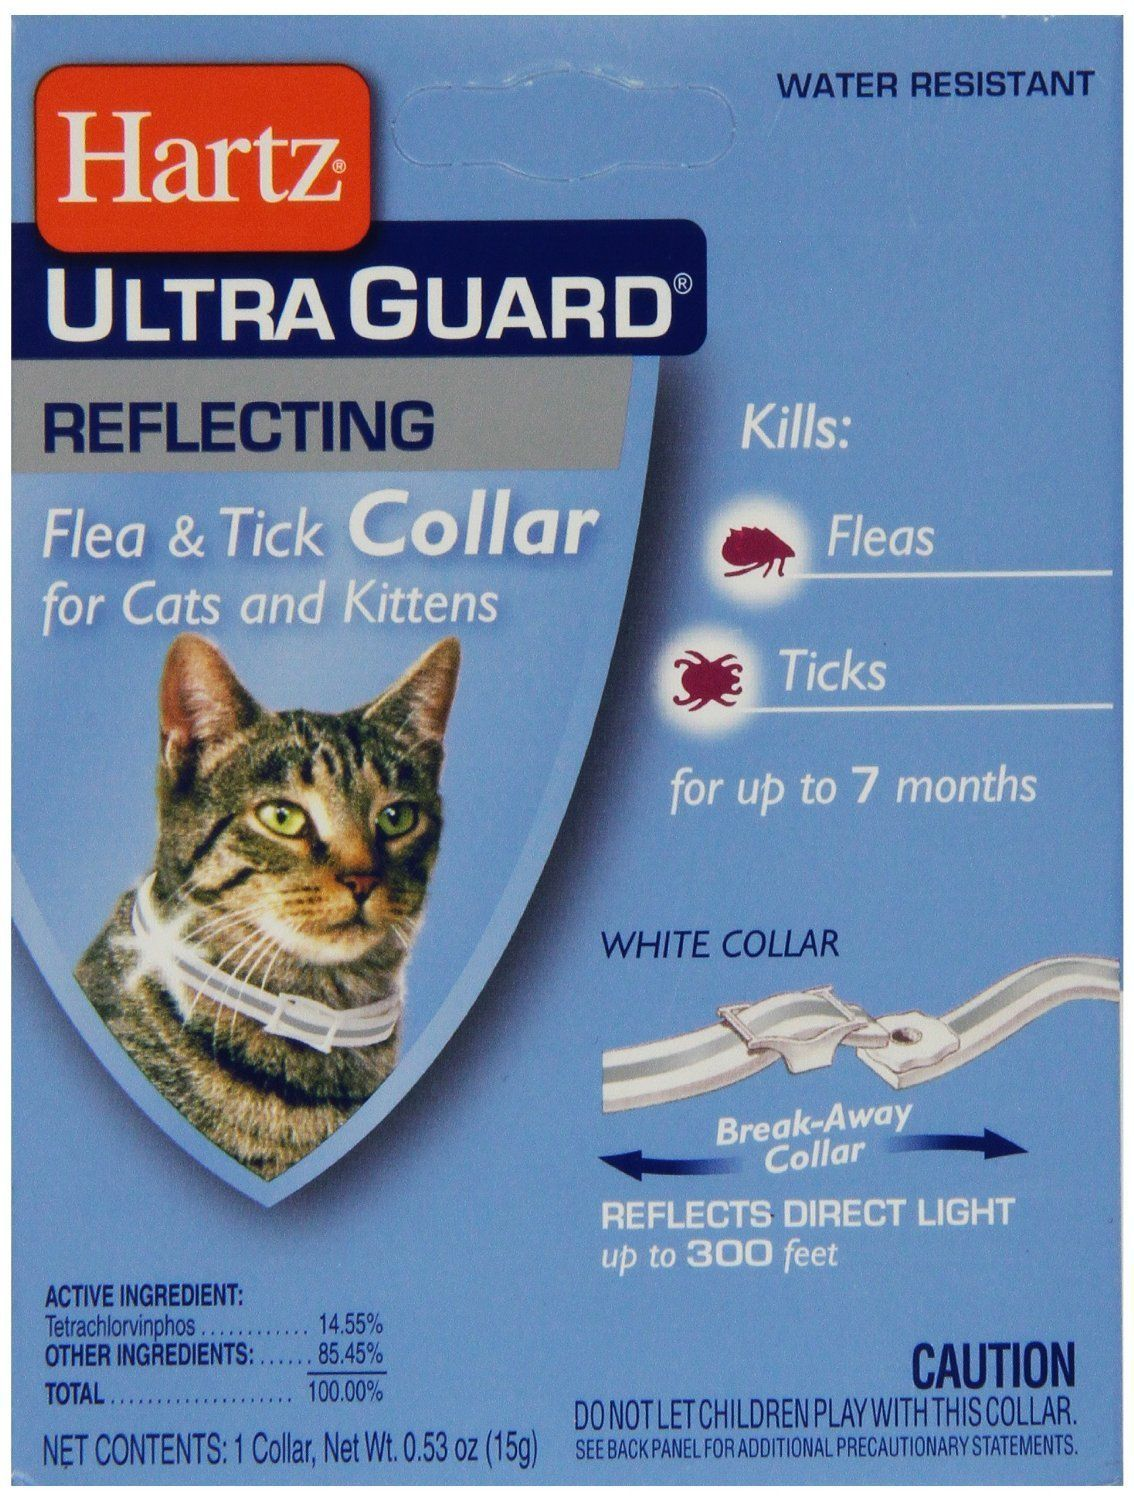 Hartz 02899 Advanced Guard Reflecting Water Resistant Flea And Tick Collar For Cats Visit The Image Link More Details This Flea And Tick Cat Collars Fleas